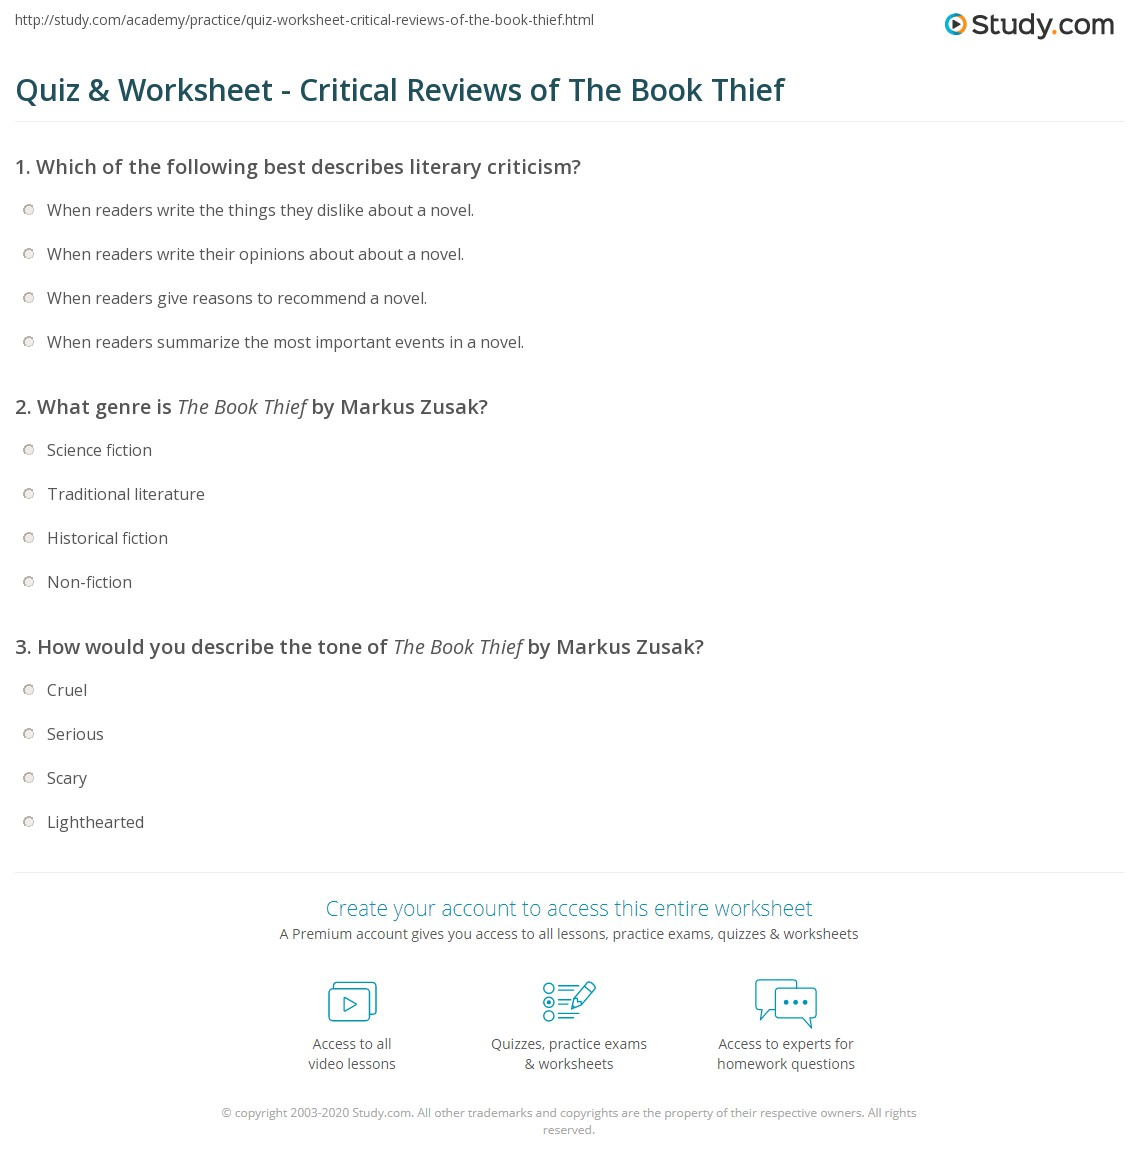 quiz worksheet critical reviews of the book thief com print literary criticism for the book thief worksheet